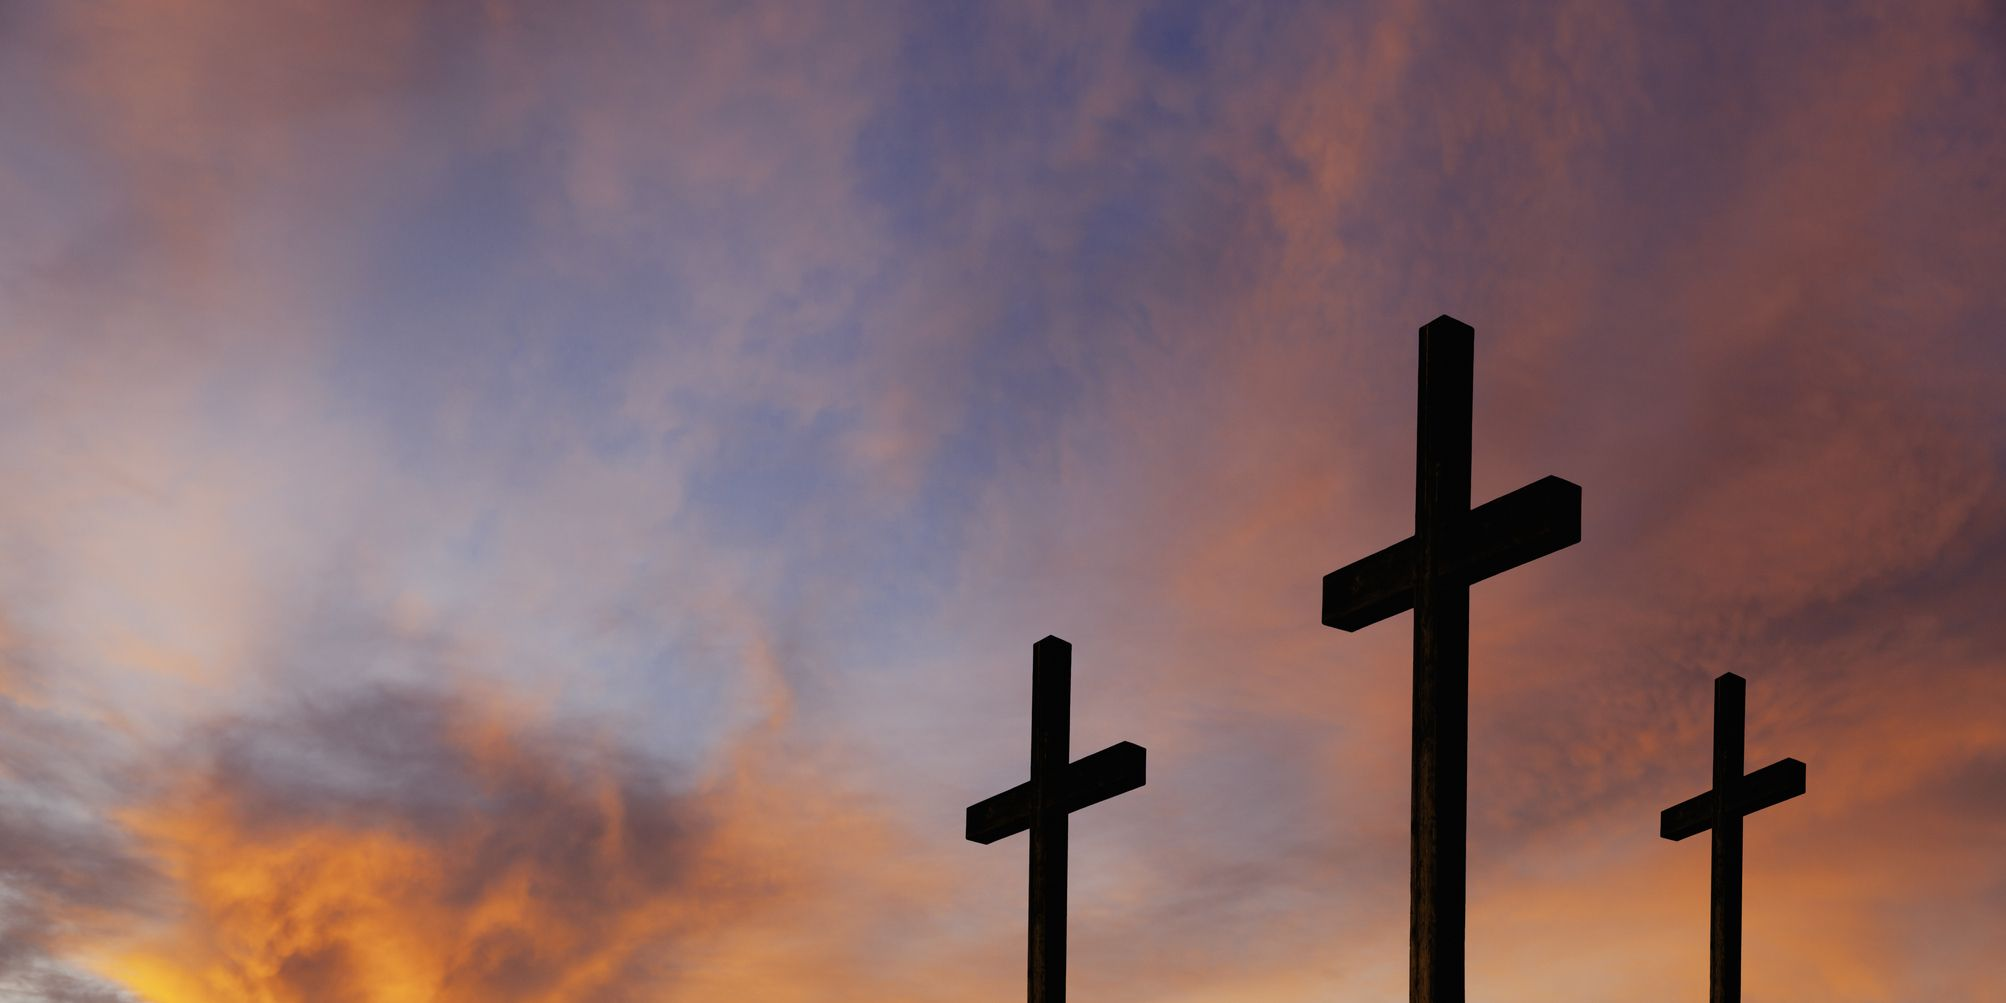 What is Lent? Here's Everything You Need to Know About the Christian Holiday